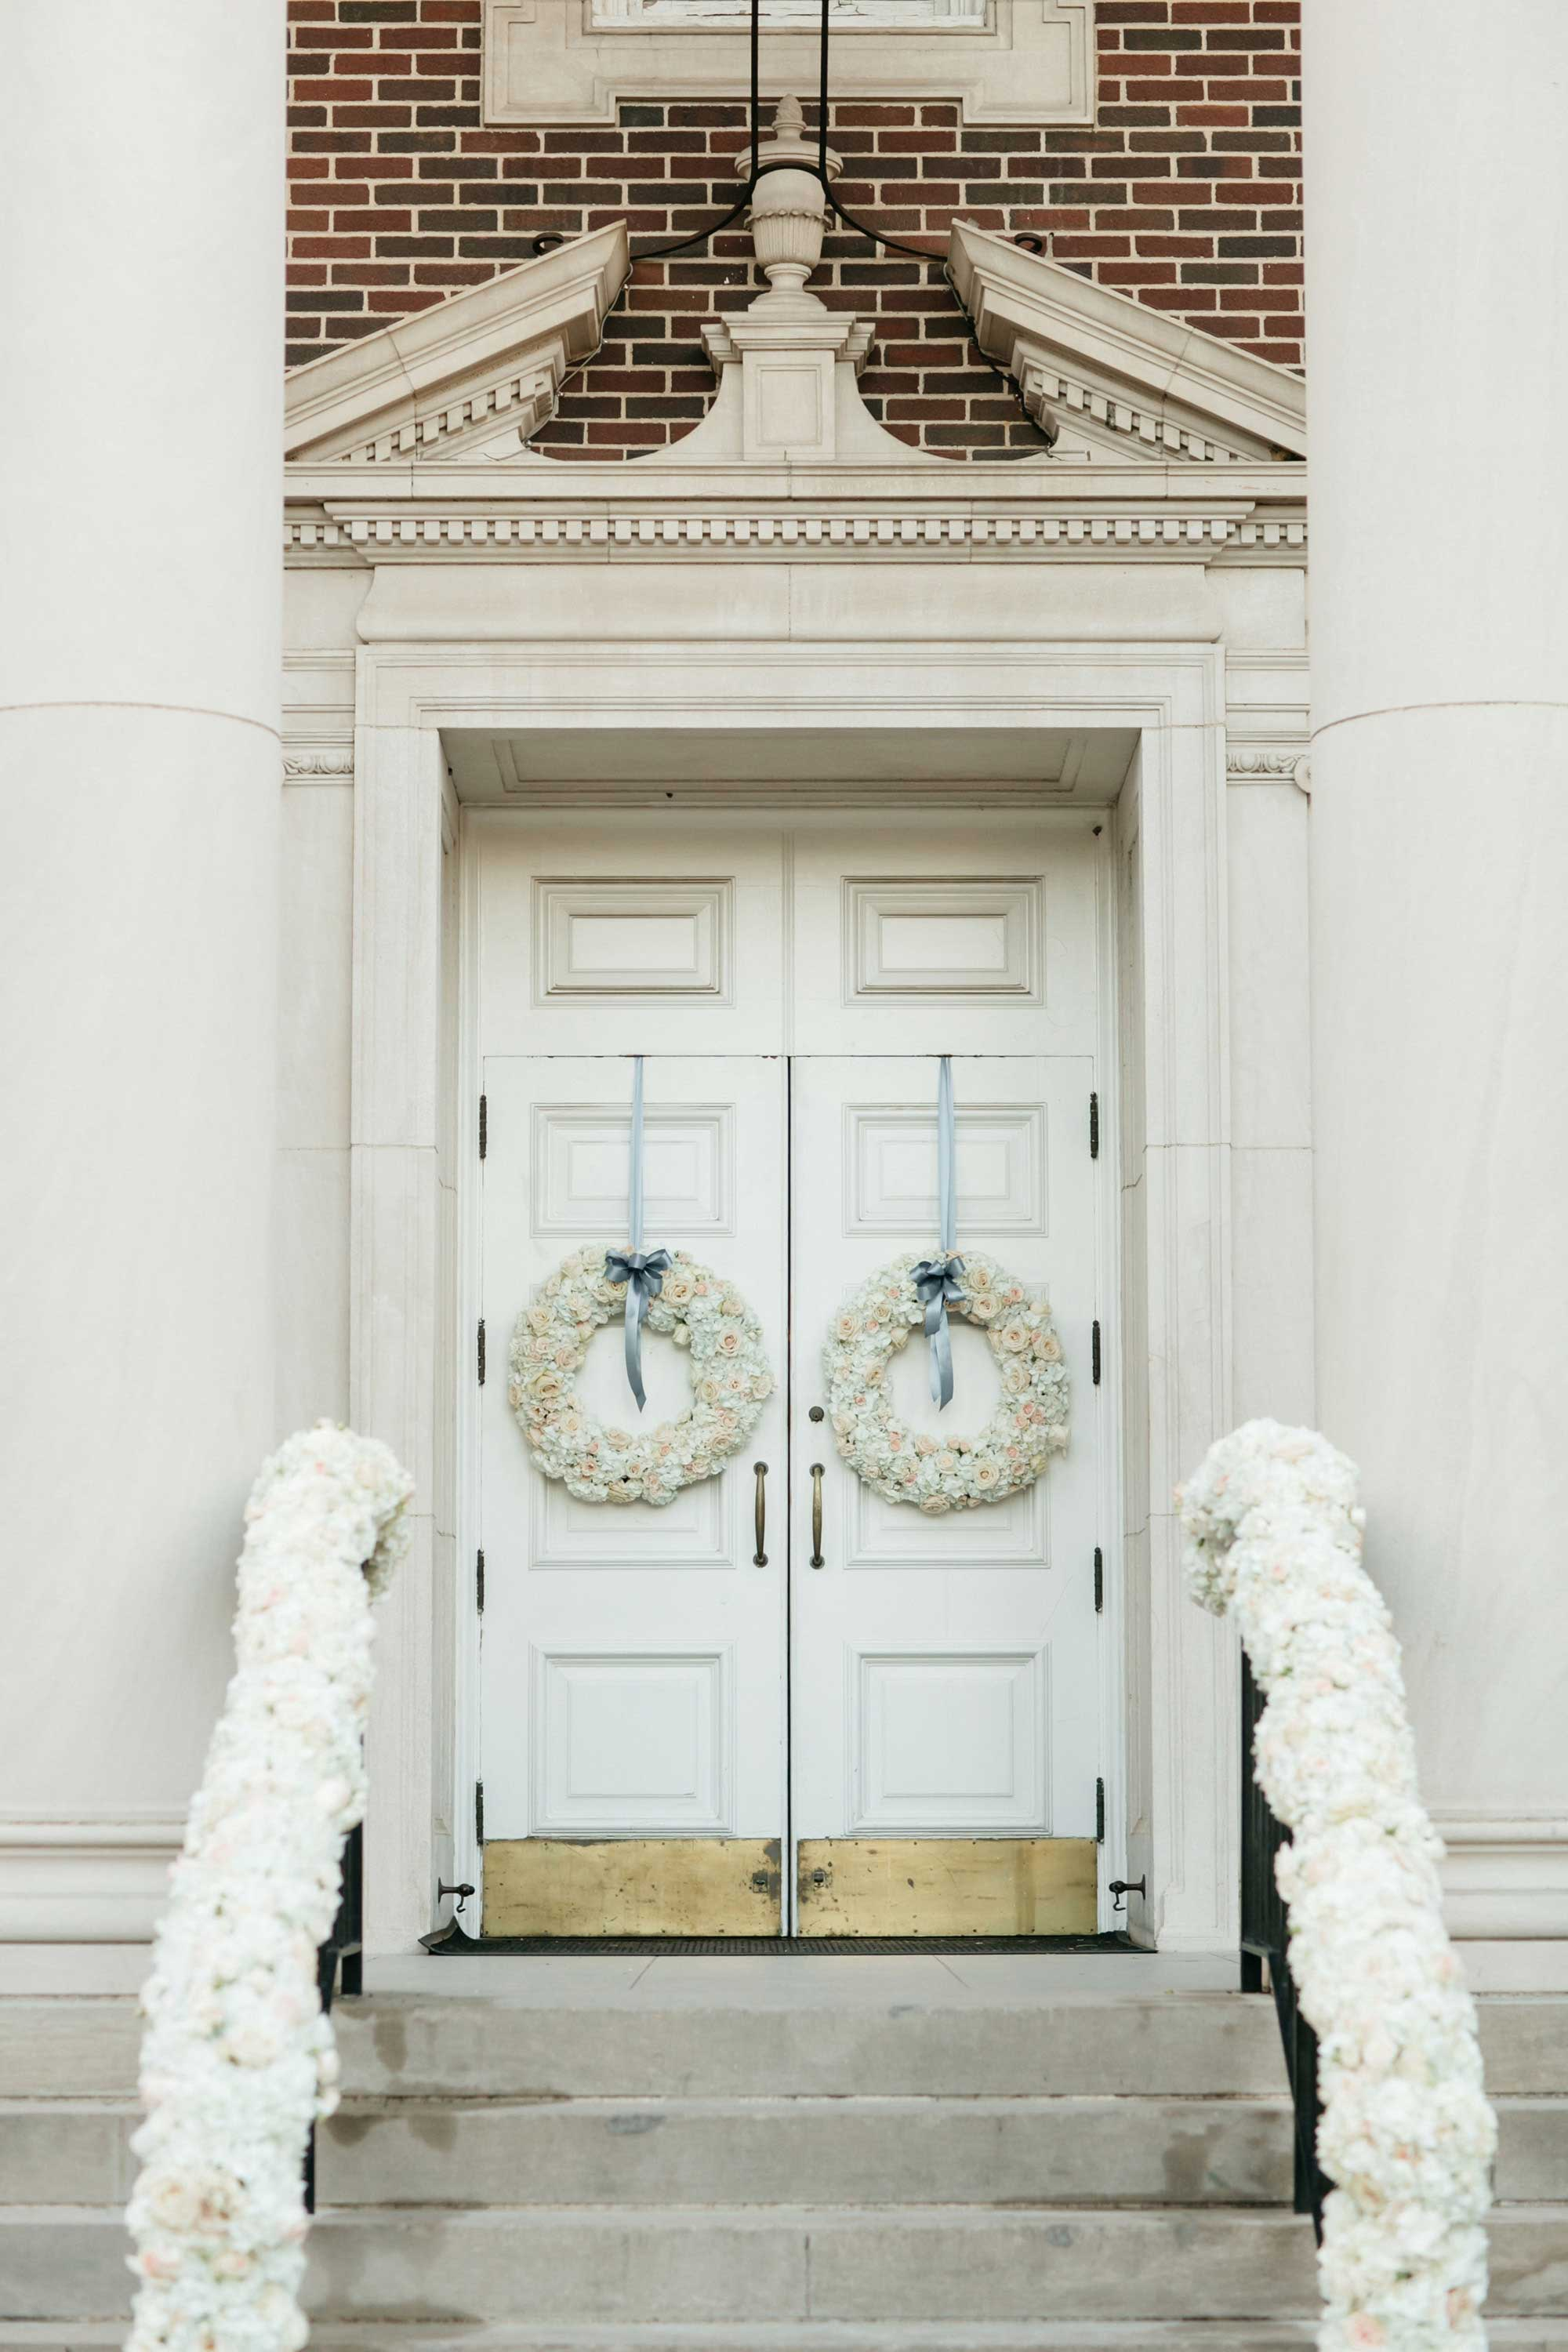 Wedding Ceremony Ideas: 13 Décor Ideas For A Church